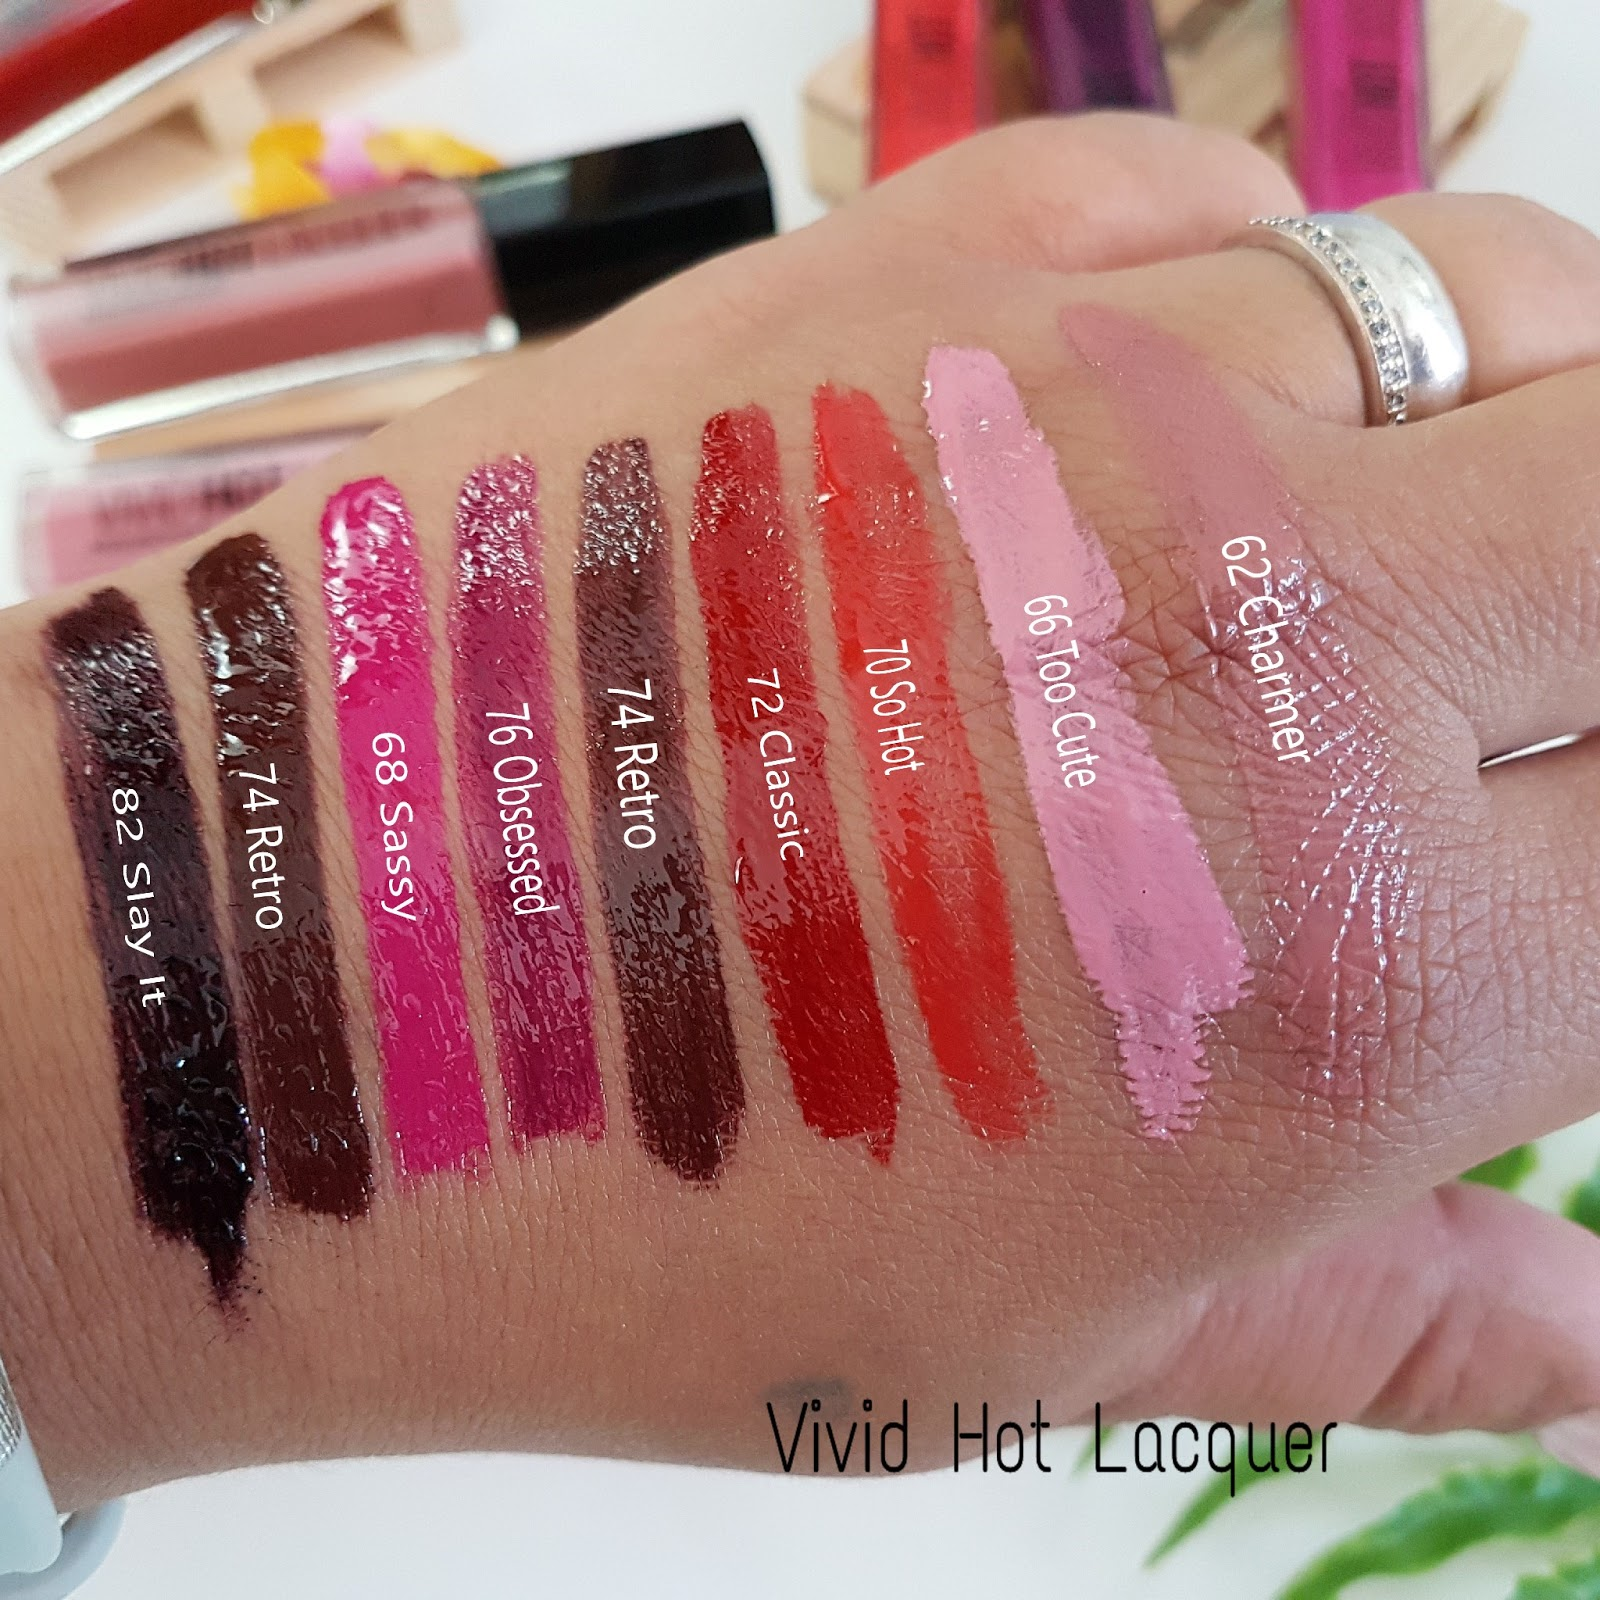 swatch_vivid_hot_lacquer_maybelline_concours_mama_syca_beaute